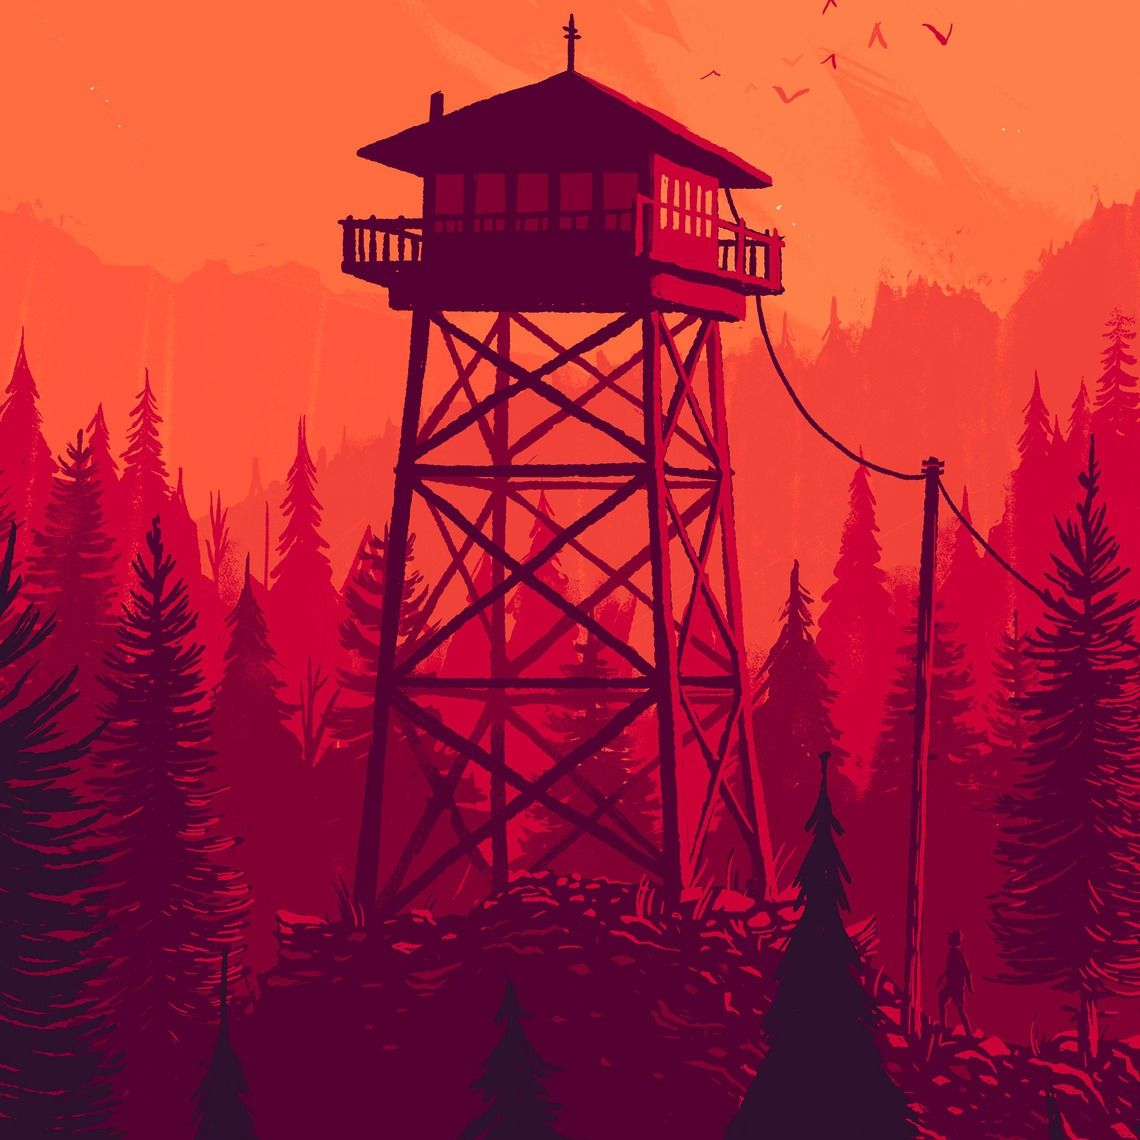 Firewatch A Game By Campo Santo Art By Olly Moss Firewatch Art Campo Santo